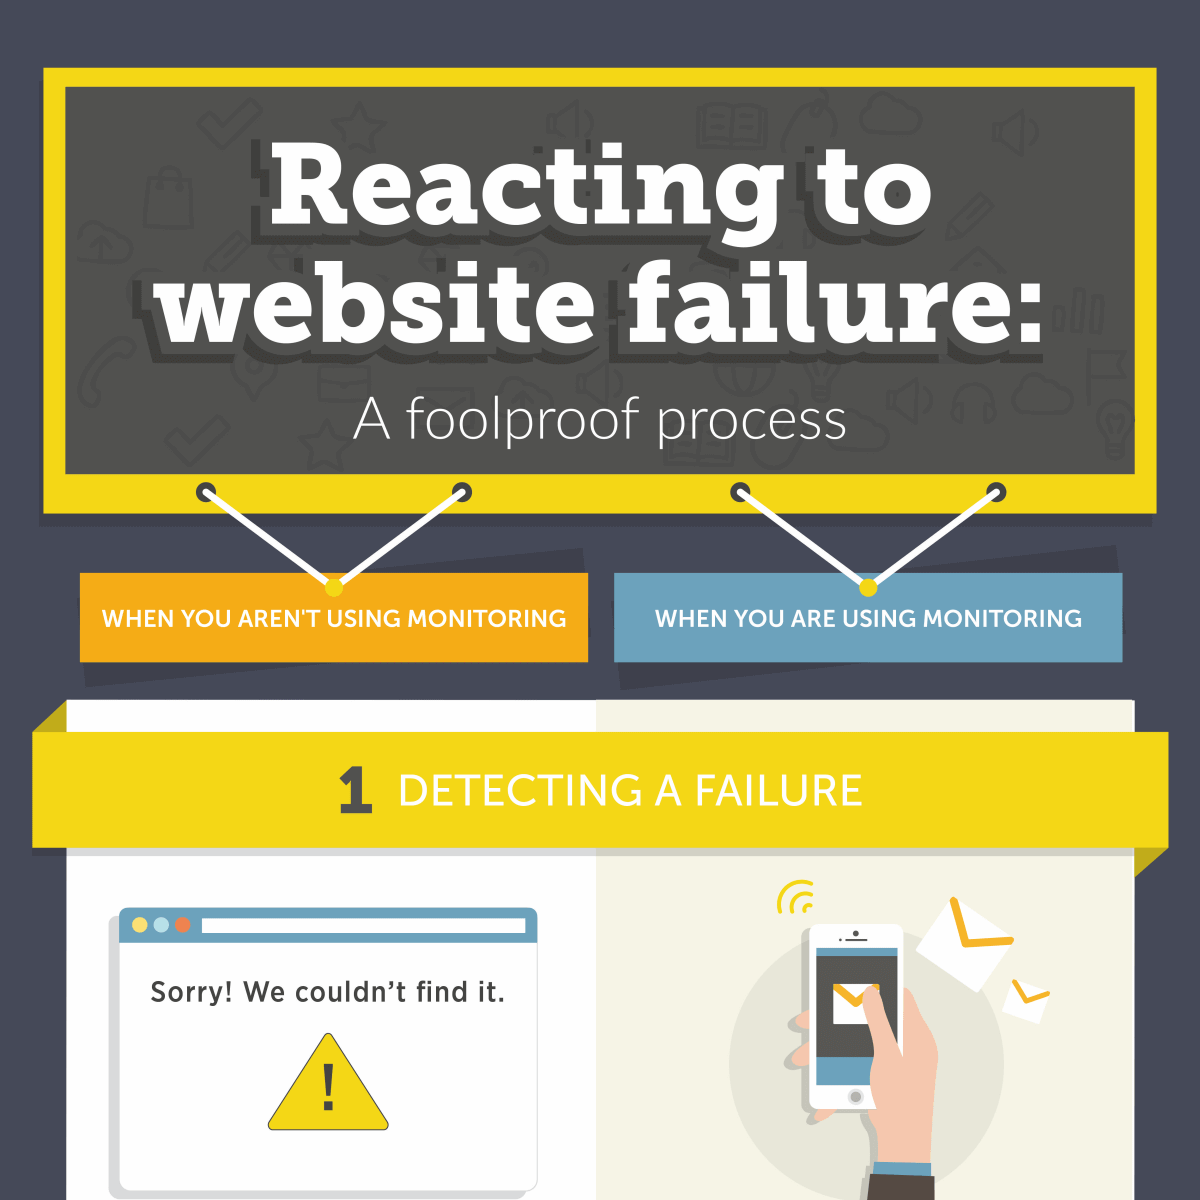 Reacting to website failure: A foolproof process (infographic)